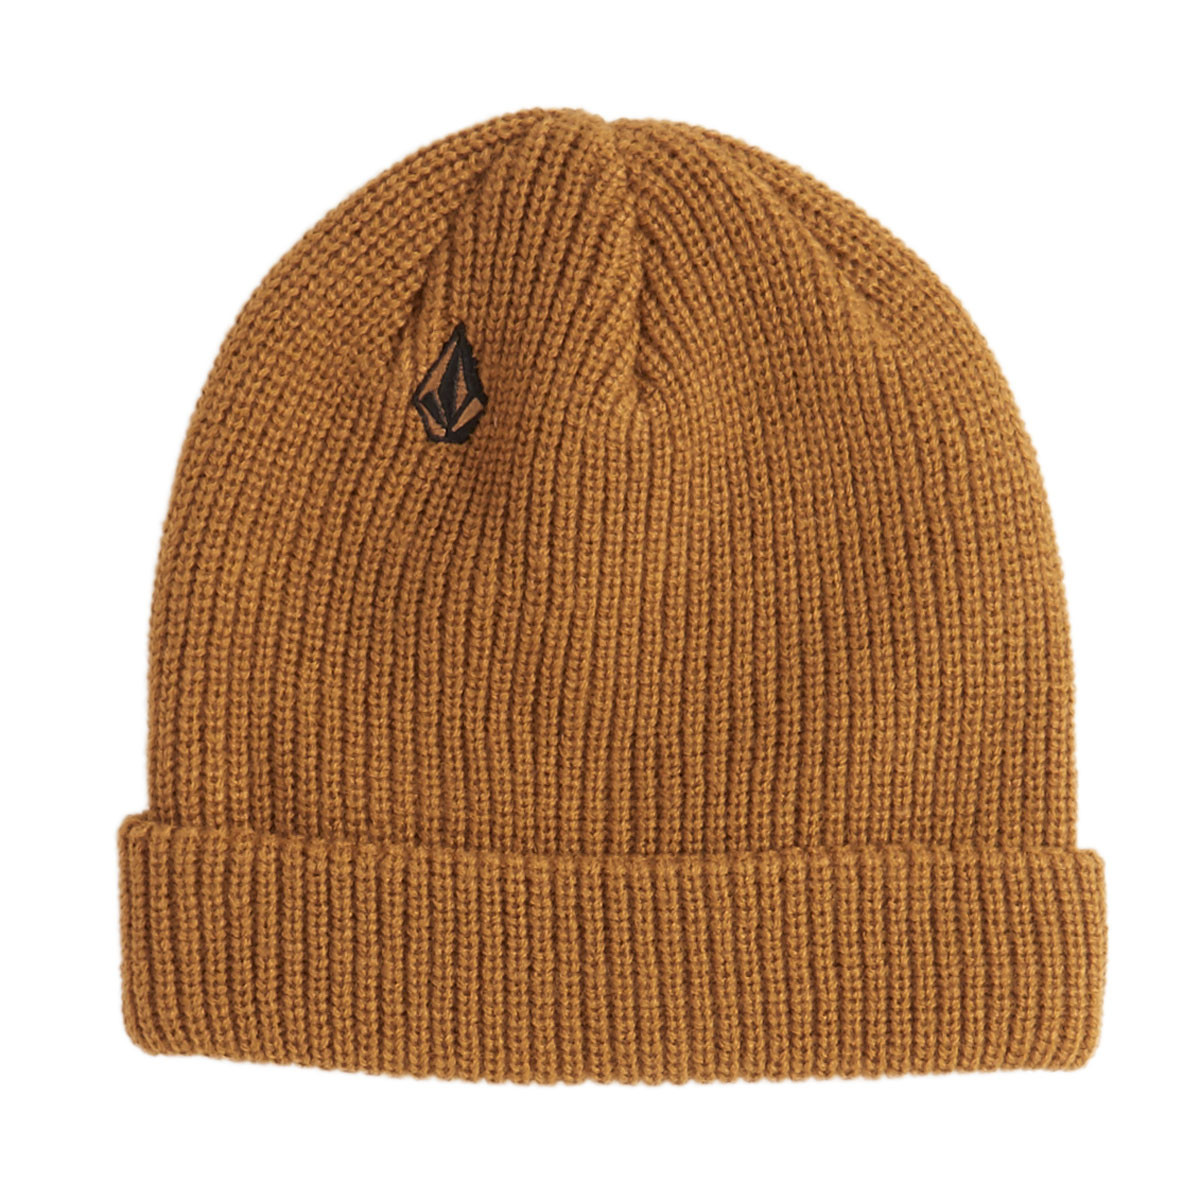 Volcom Full Stone Beanie - Old Gold a70d79a72502